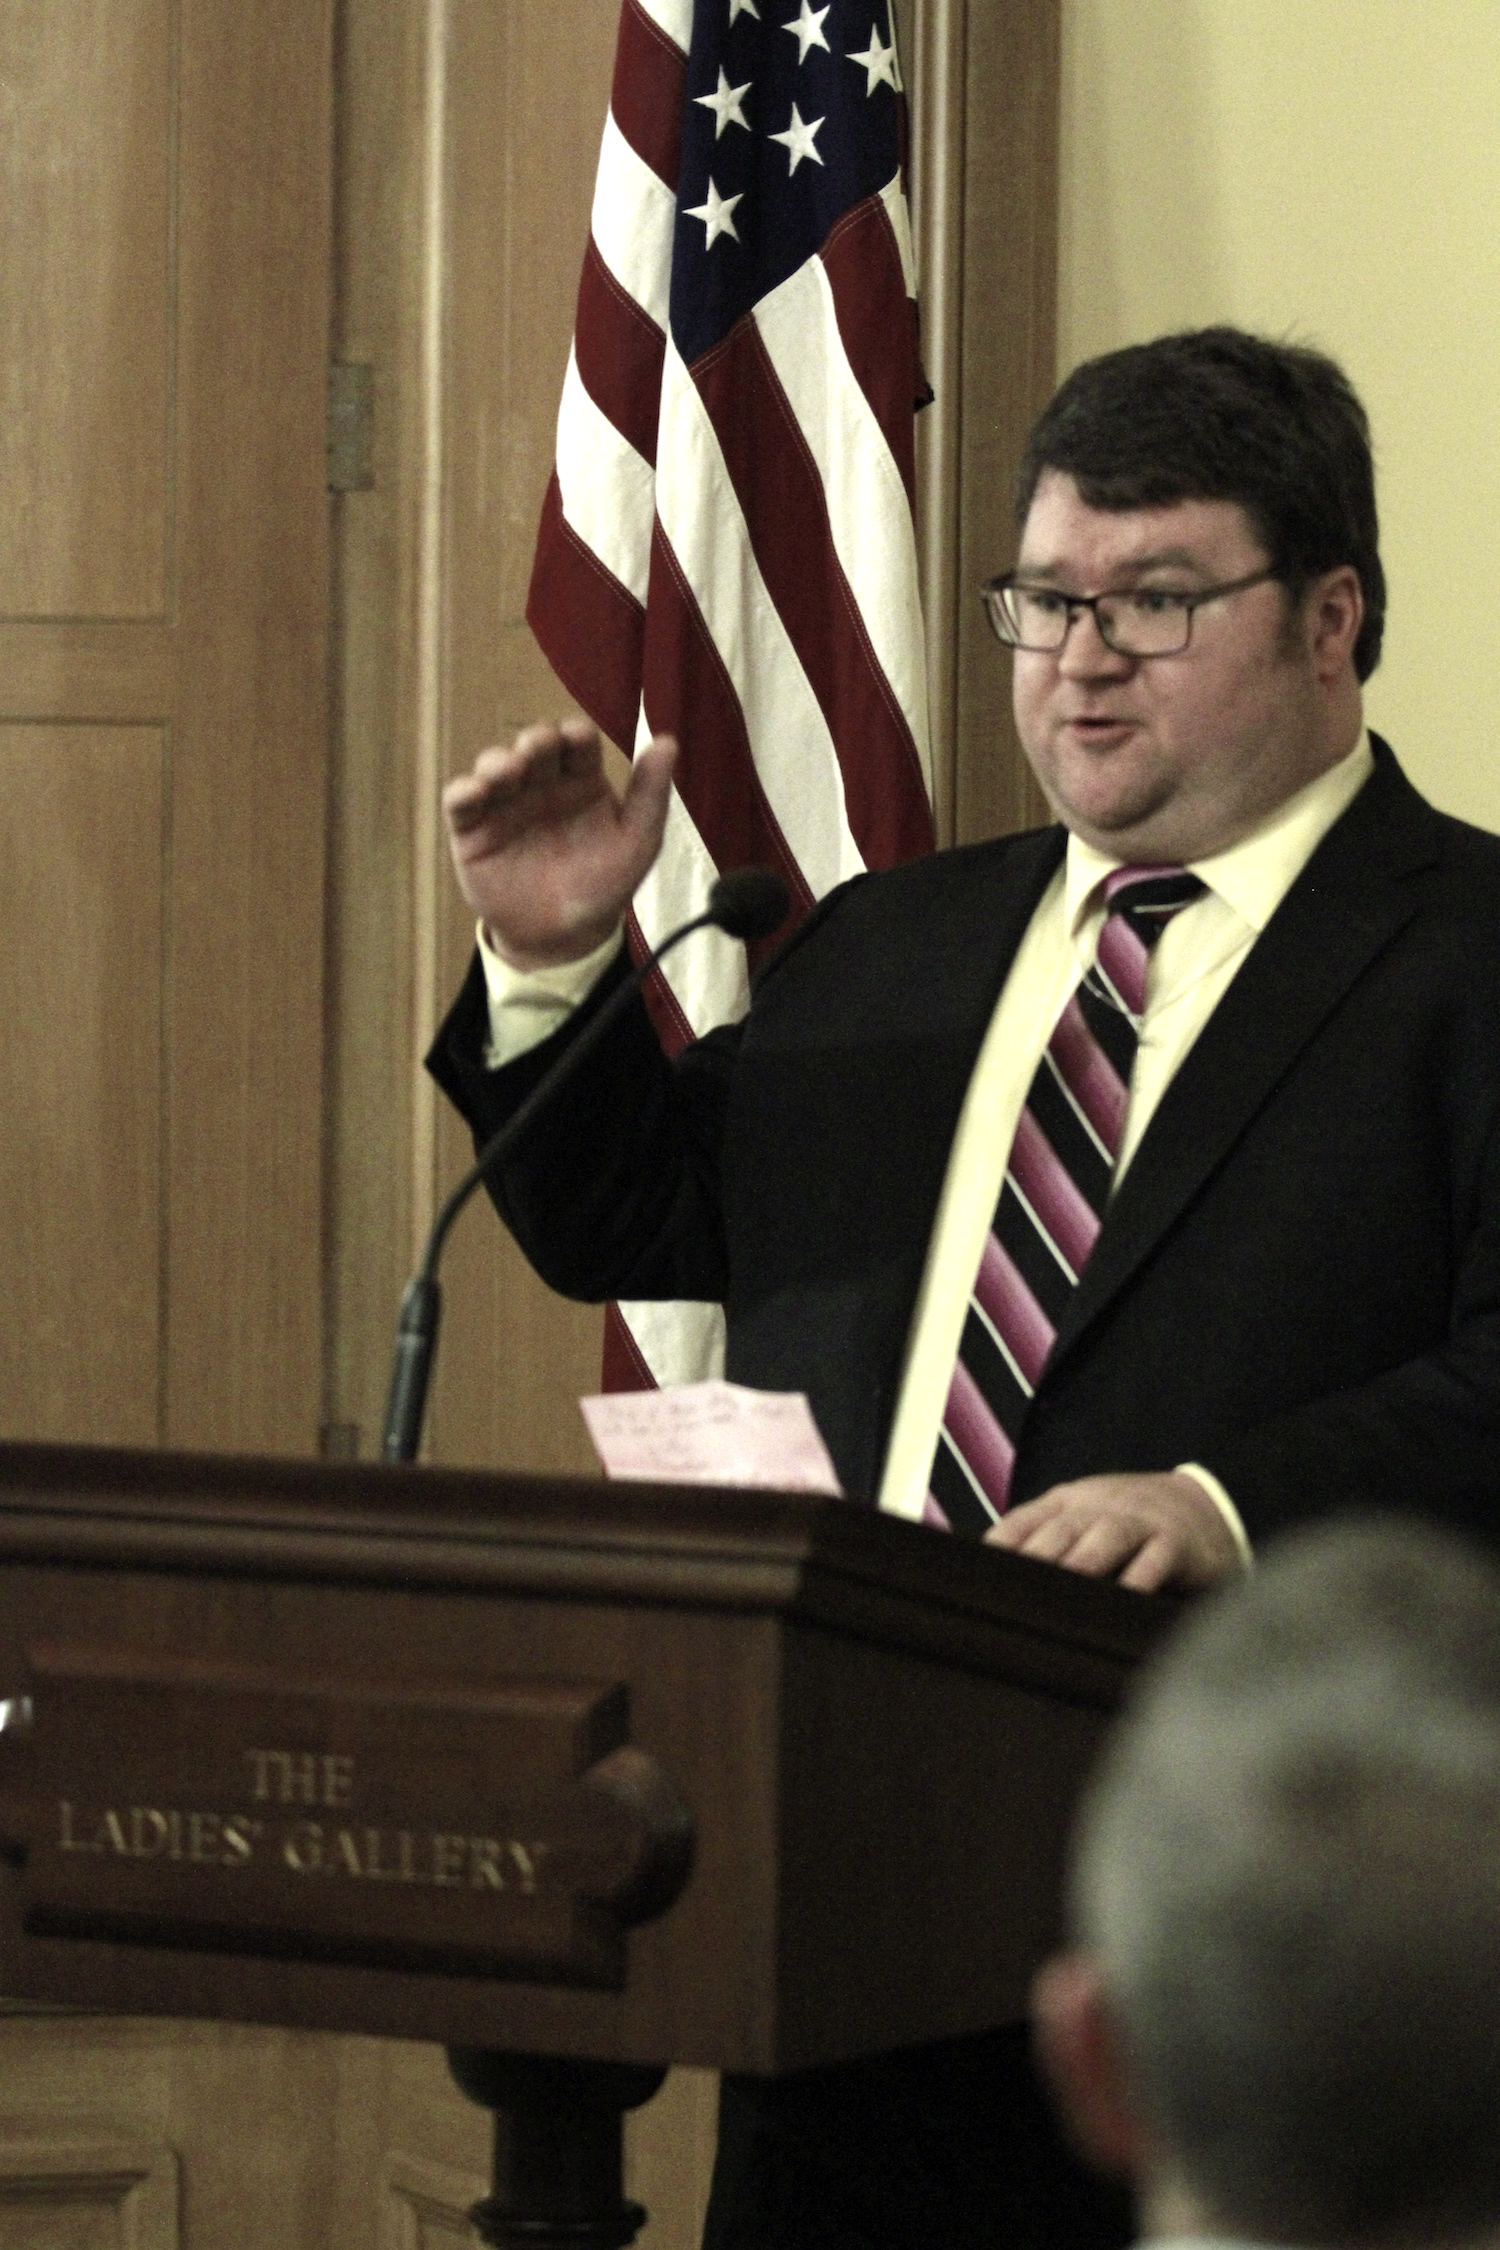 Nick Bates, Director of Hunger Network in Ohio